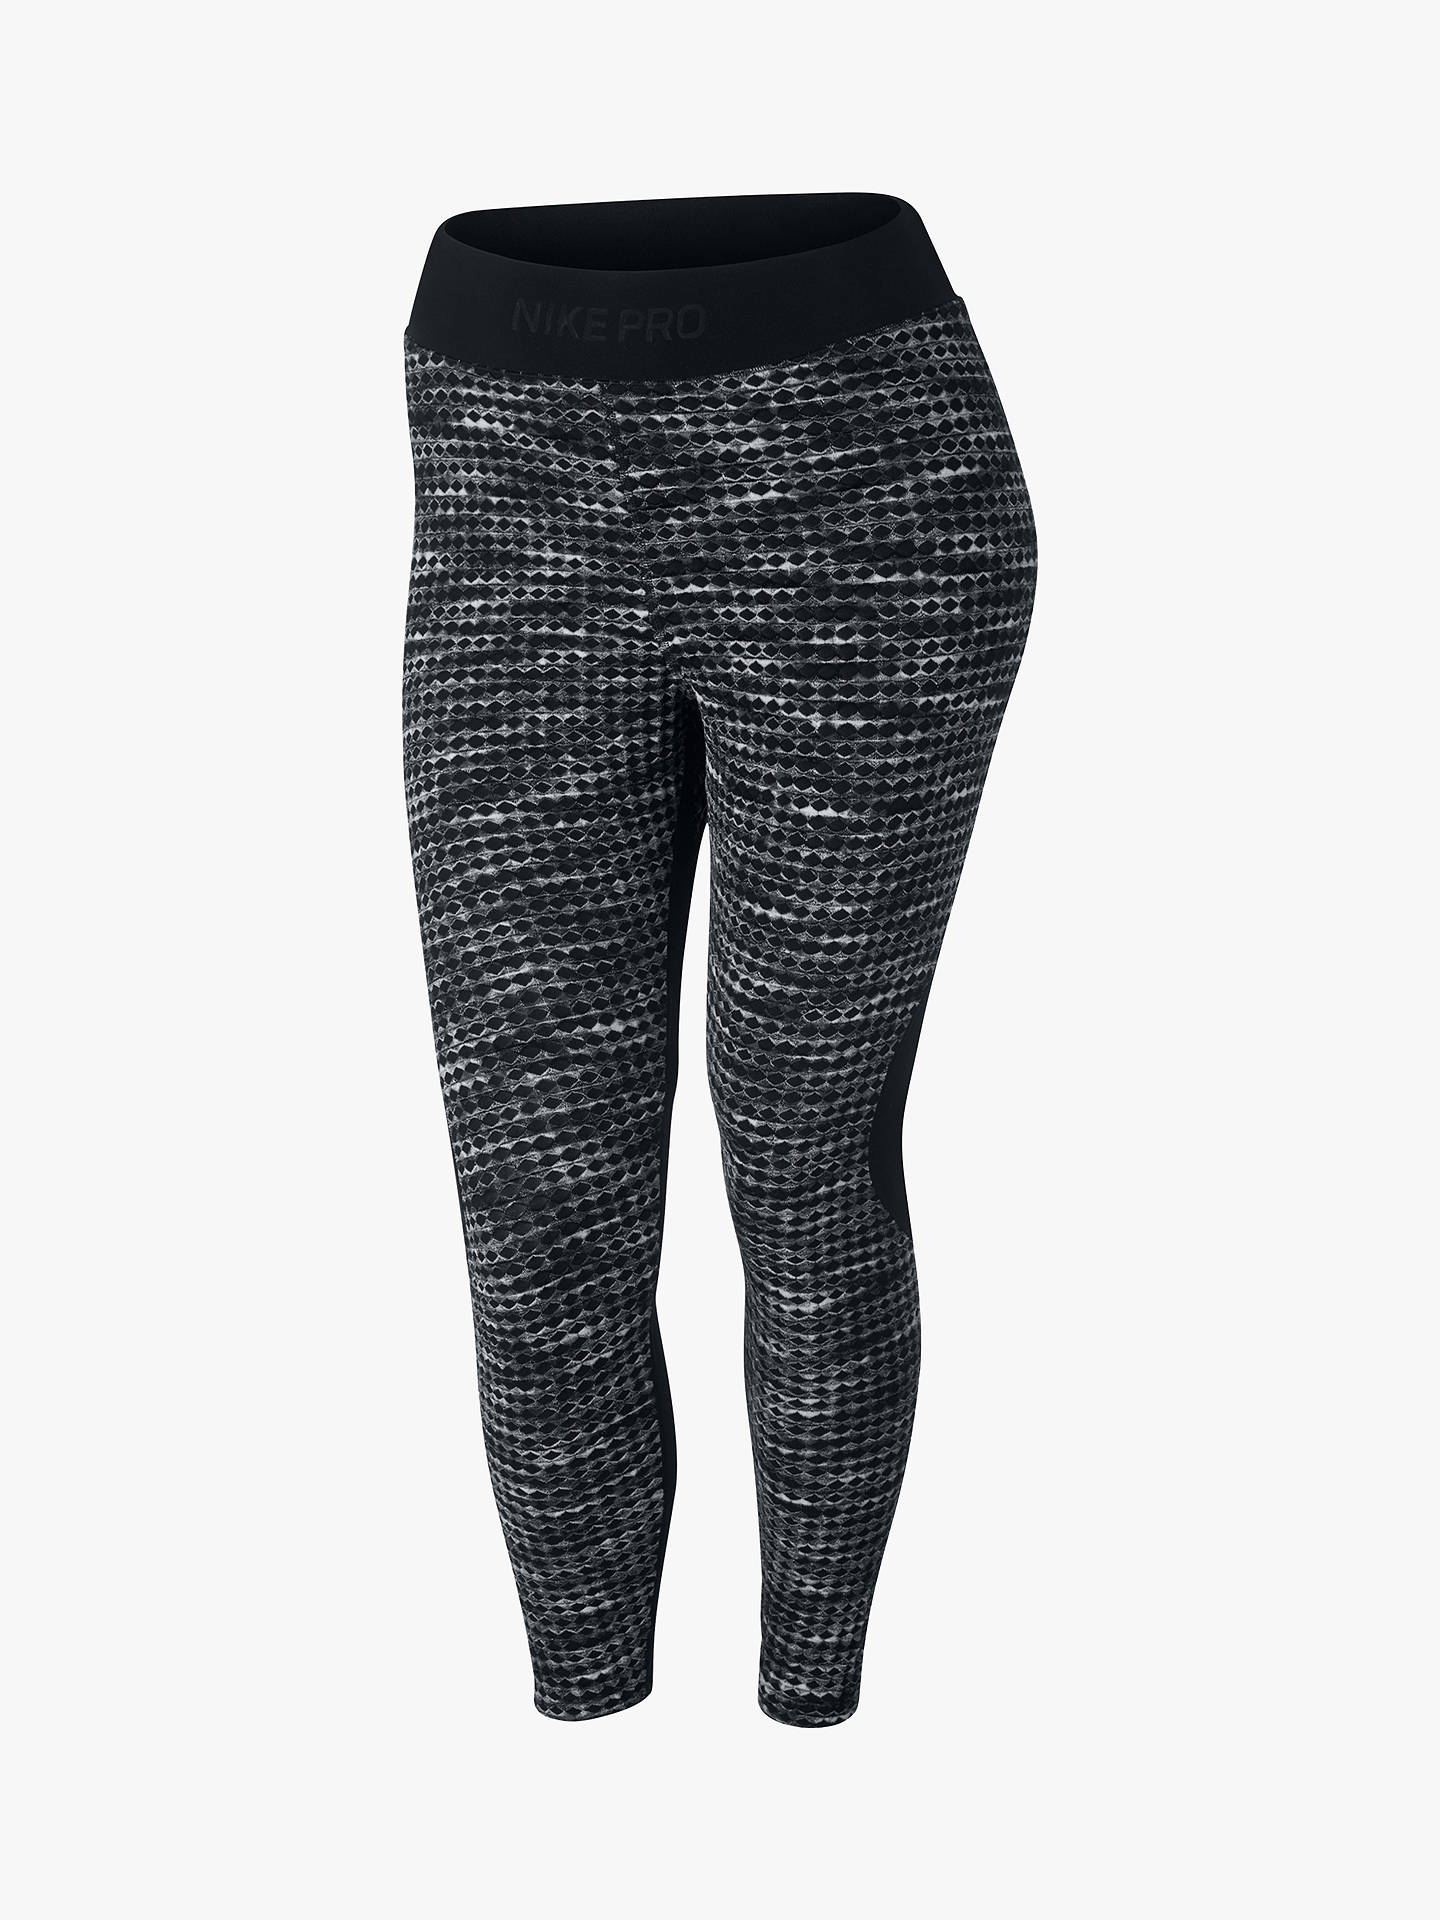 ae95395556dfa Buy Nike Pro HyperWarm Printed Crop Tights, Black, XS Online at  johnlewis.com ...